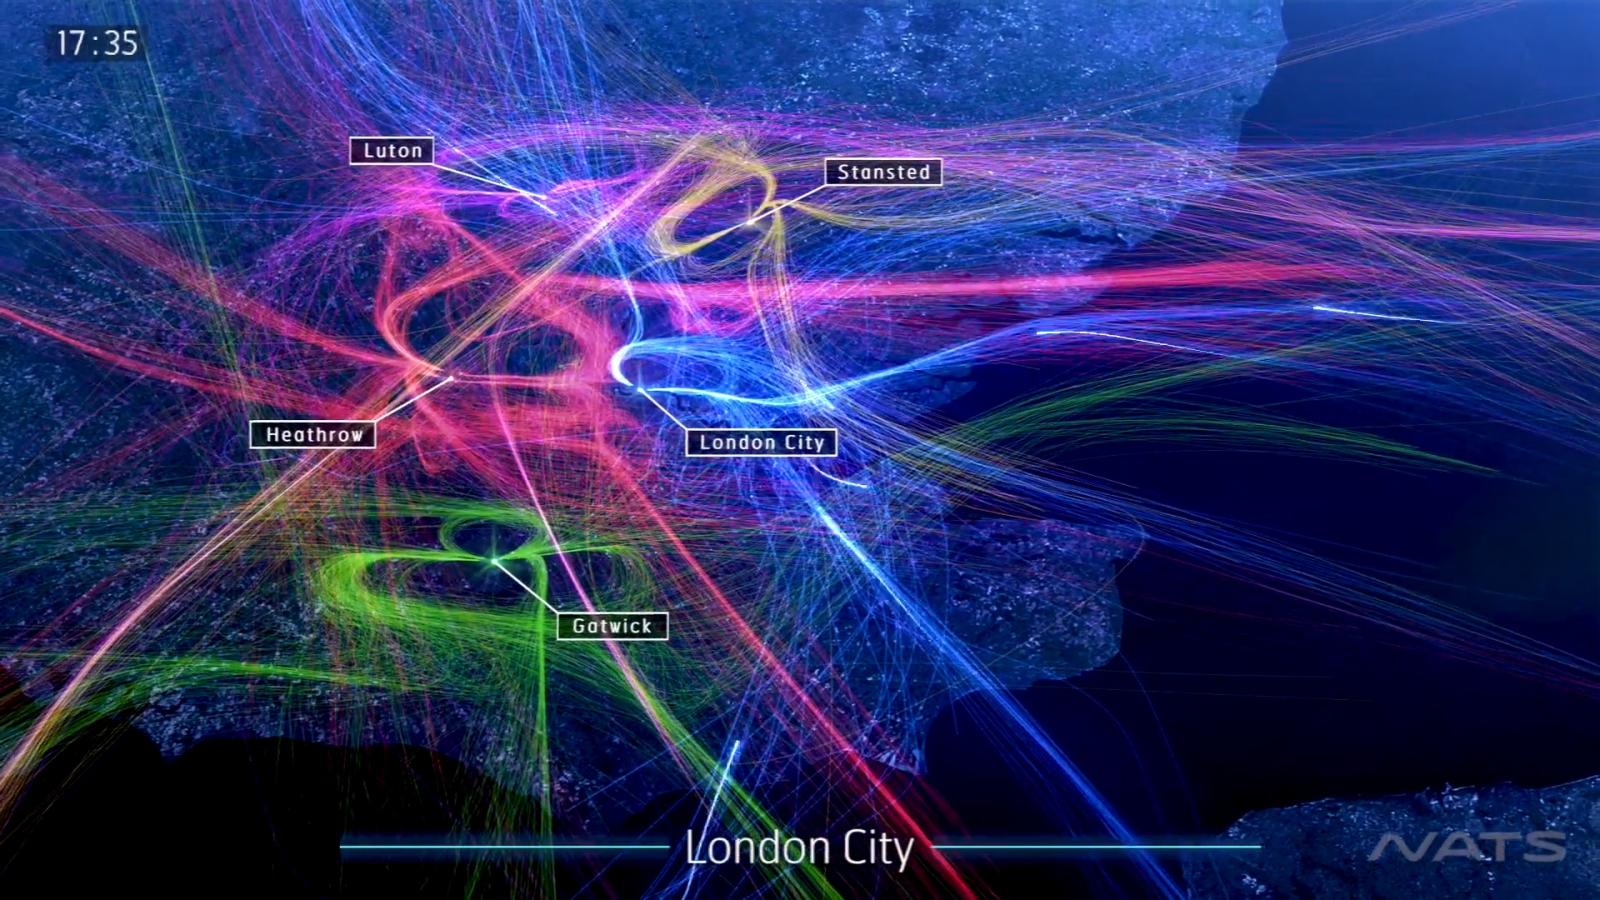 London Capital And Finance Reviews >> London airports: Amazing animation shows over 3,000 flights made every day across capital